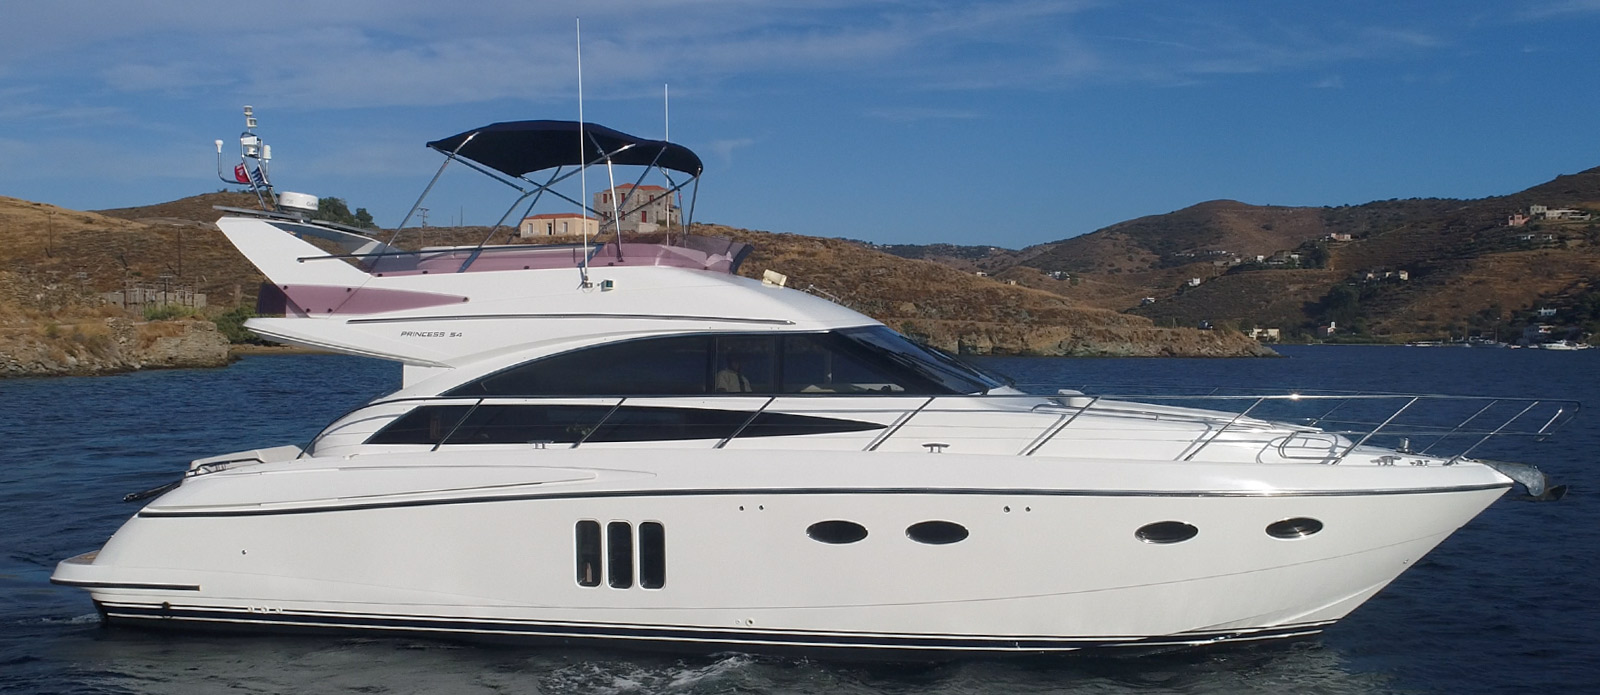 Princess-P54-Fly-Bridge-Motor-Yacht-Lavimar-Side-Profile-Shot